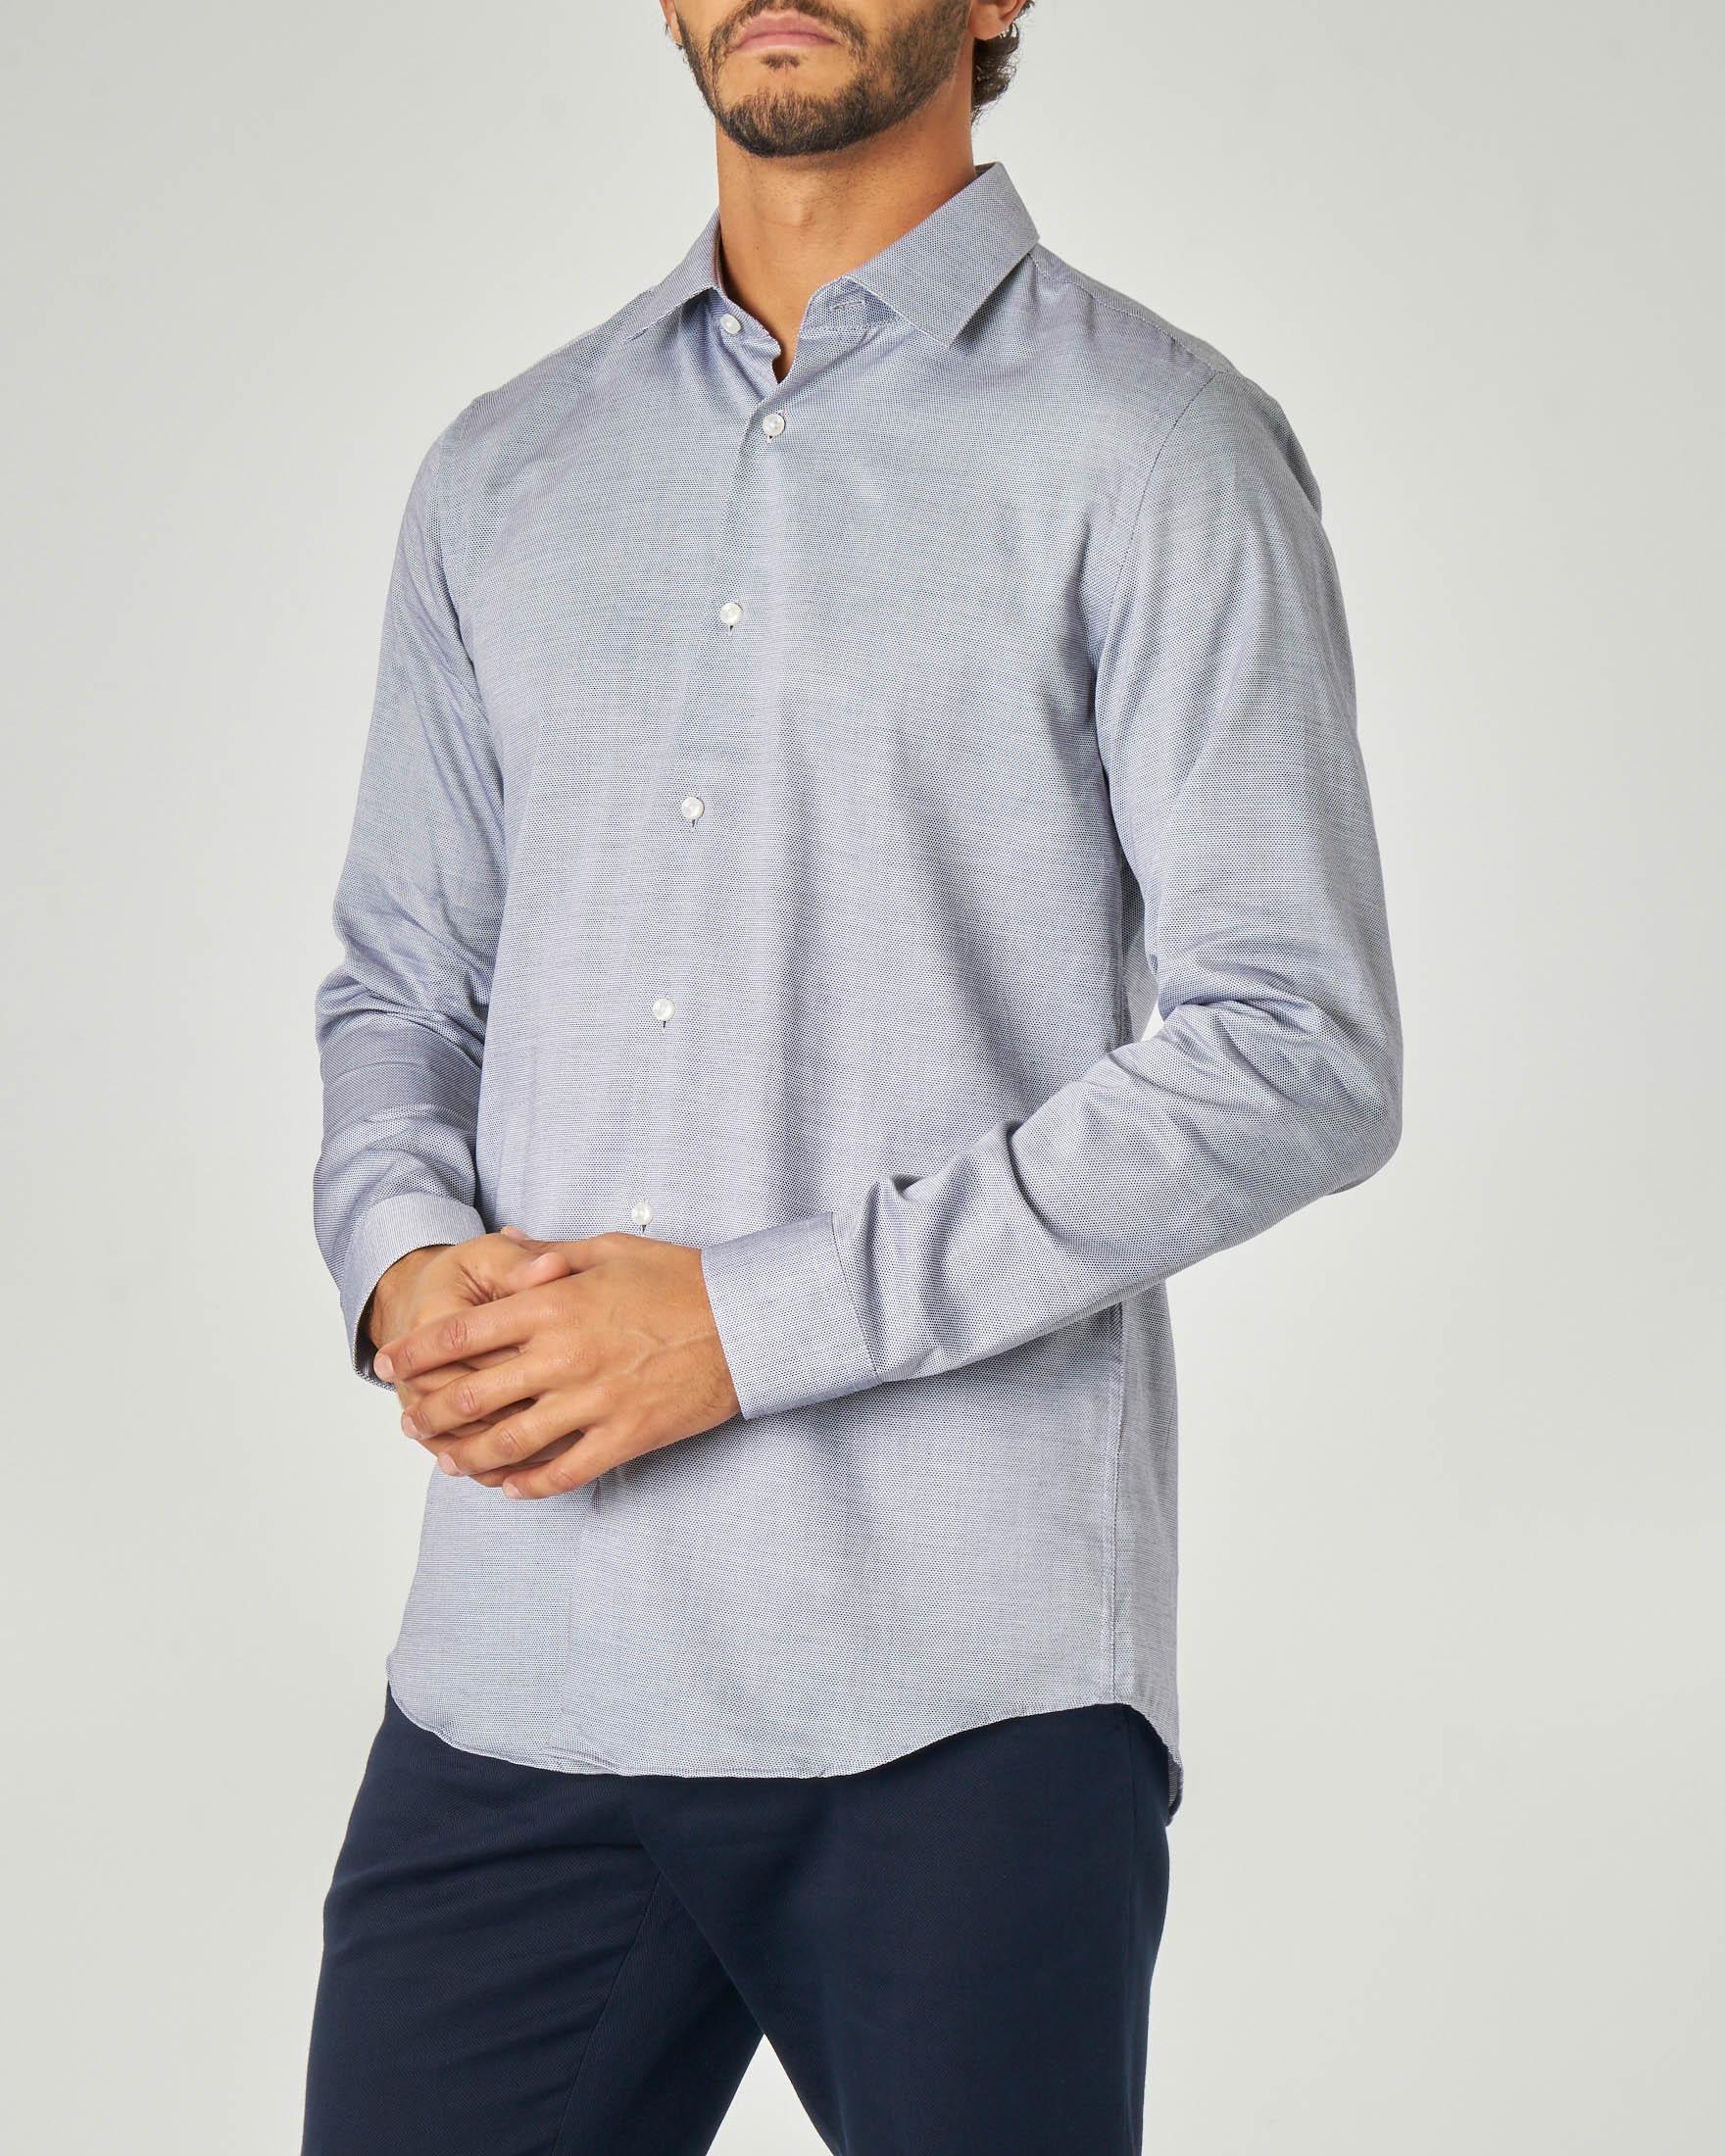 Camicia blu microarmatura con colletto all'italiana